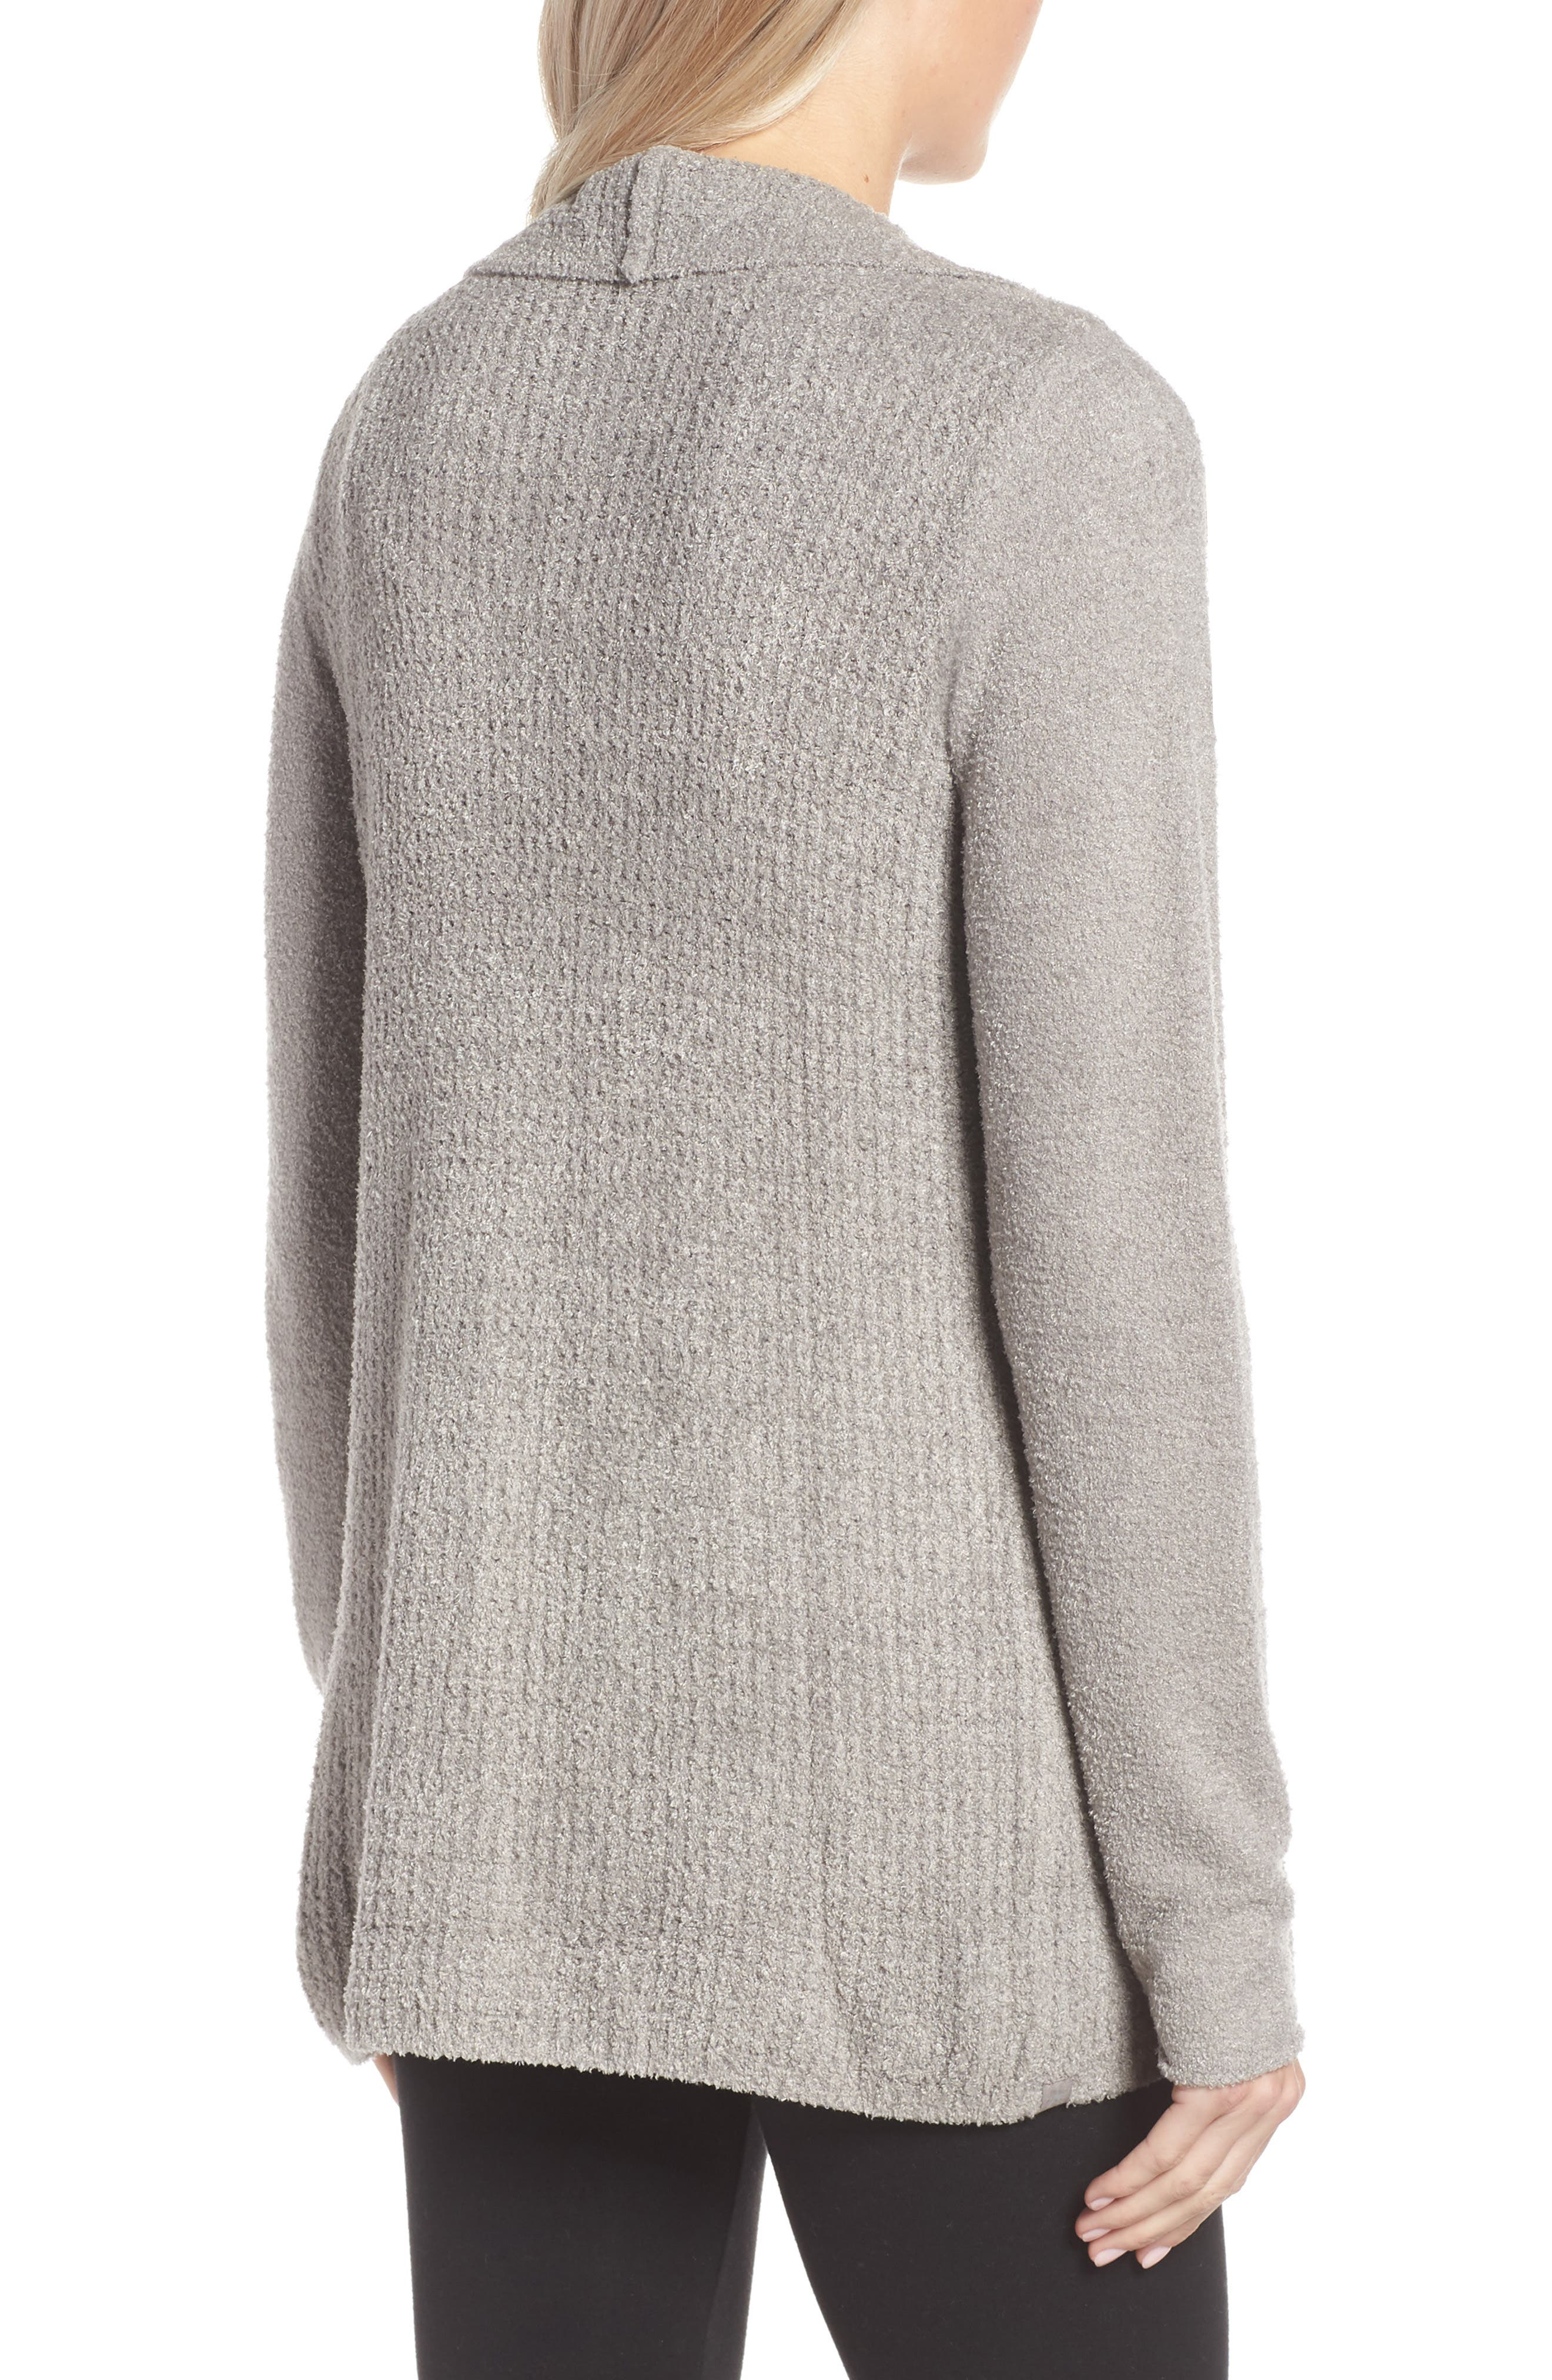 Cozychic<sup>®</sup> Lite Coastal Cardigan,                             Alternate thumbnail 2, color,                             PEWTER